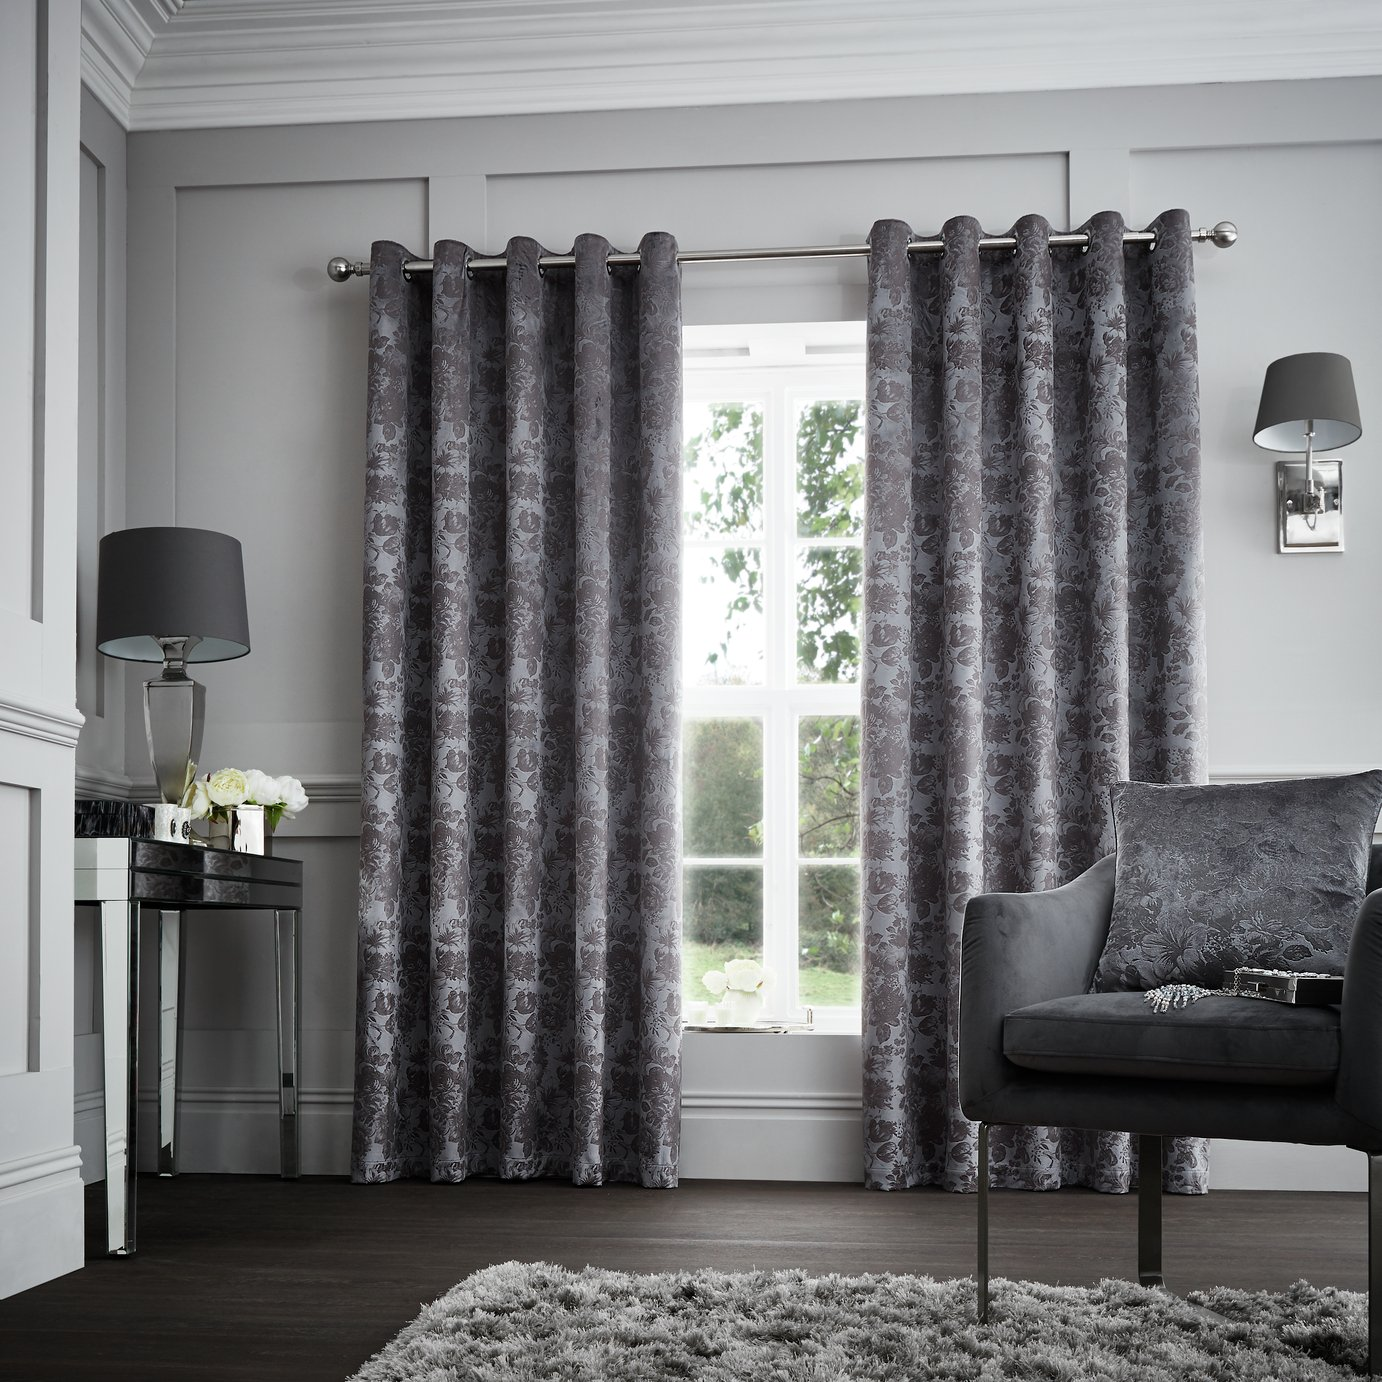 living room curtains argos decorating ideas sectional sofa buy curtina downton lined 168x137cm graphite